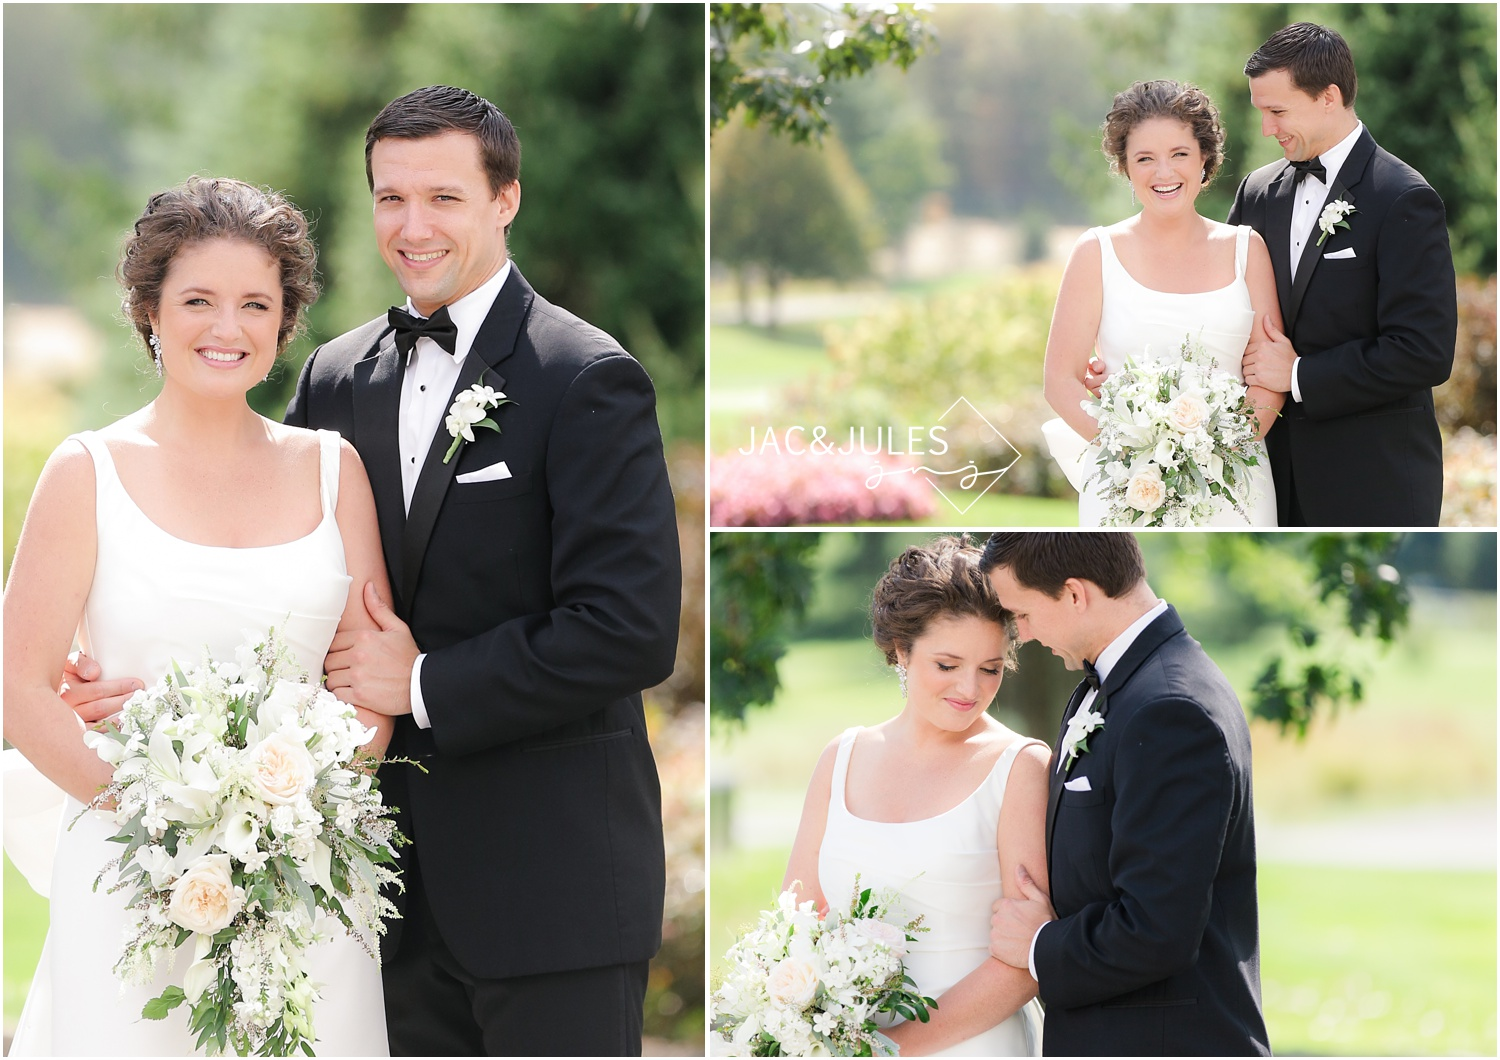 fun bride and groom portraits at eagle oaks golf and country club in wall, nj.